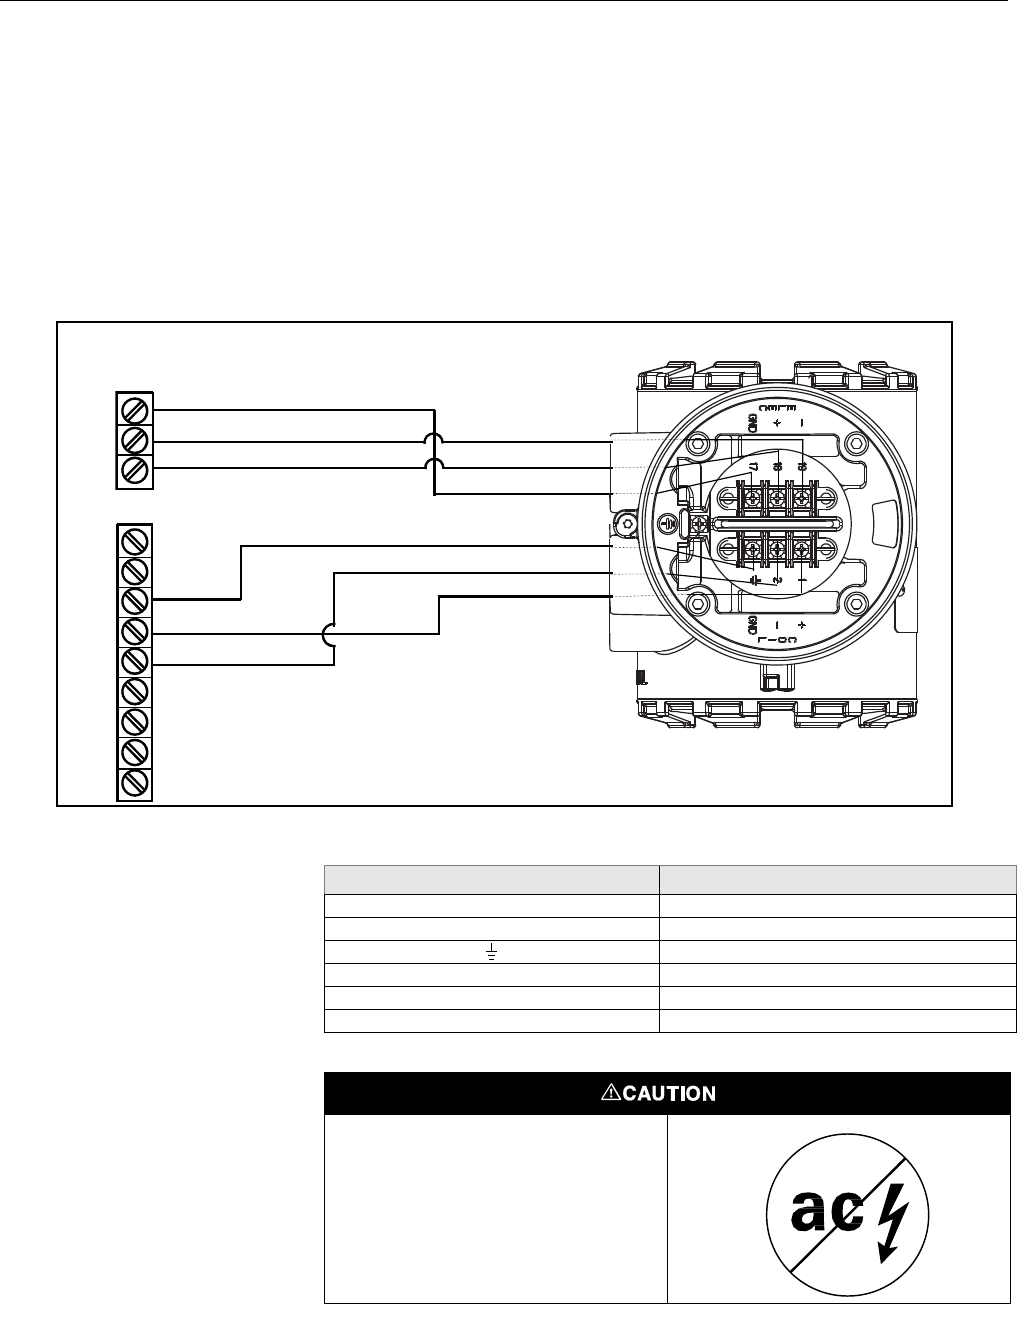 4cb8a751 c526 465f 9493 713bf7e156ff bg87 page 135 of emerson oxygen equipment rosemount 8732 user guide rosemount 8732 wiring diagram at n-0.co